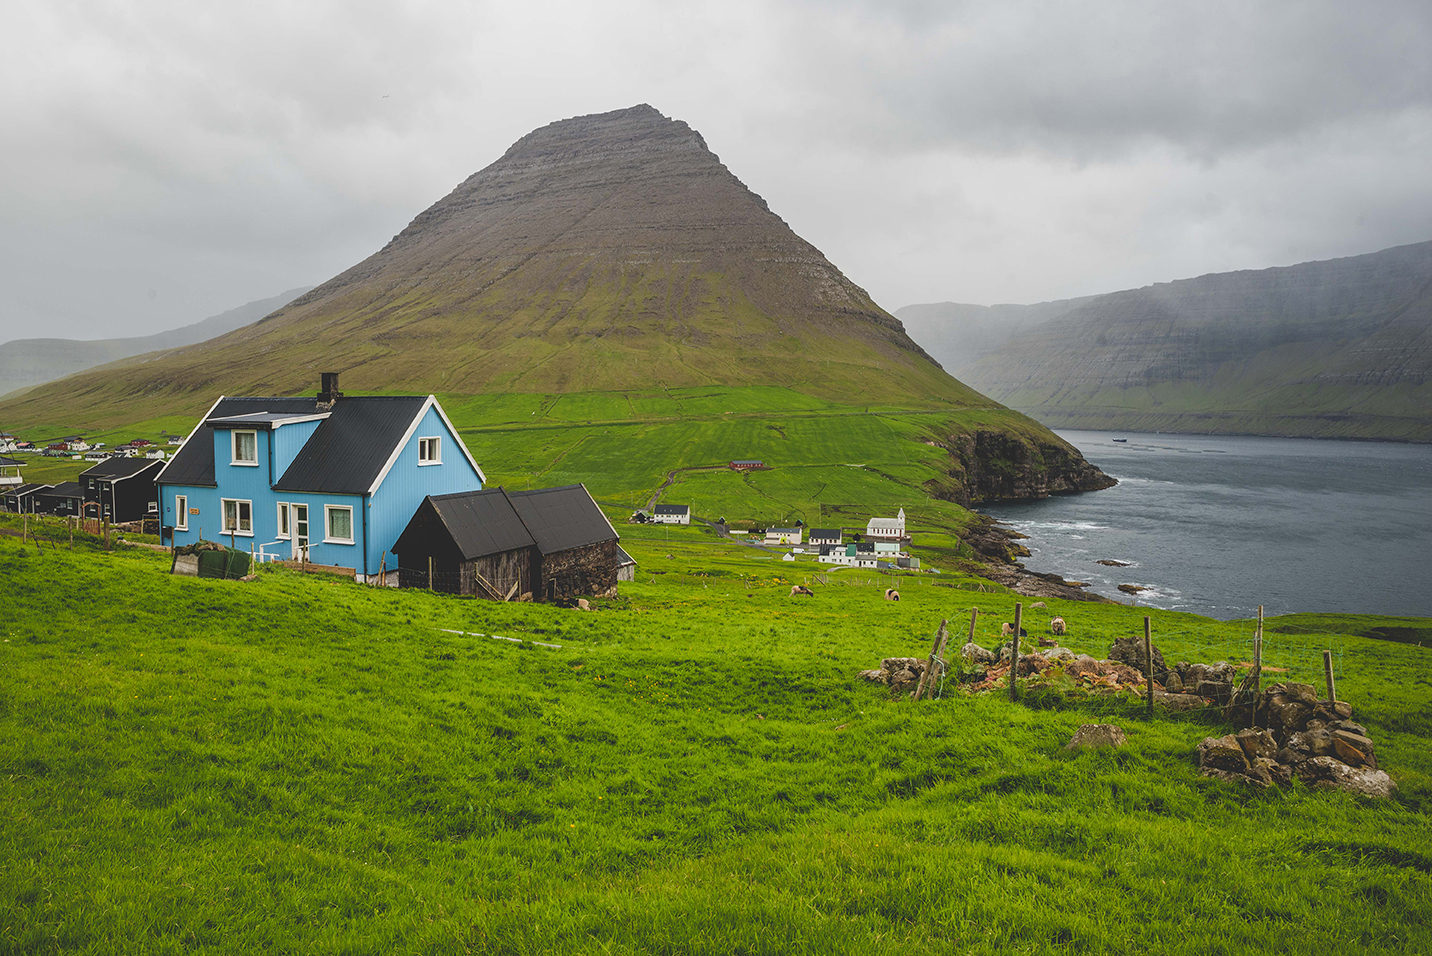 FaroeIslands_Day2_23-6-17_TAL-120.jpg